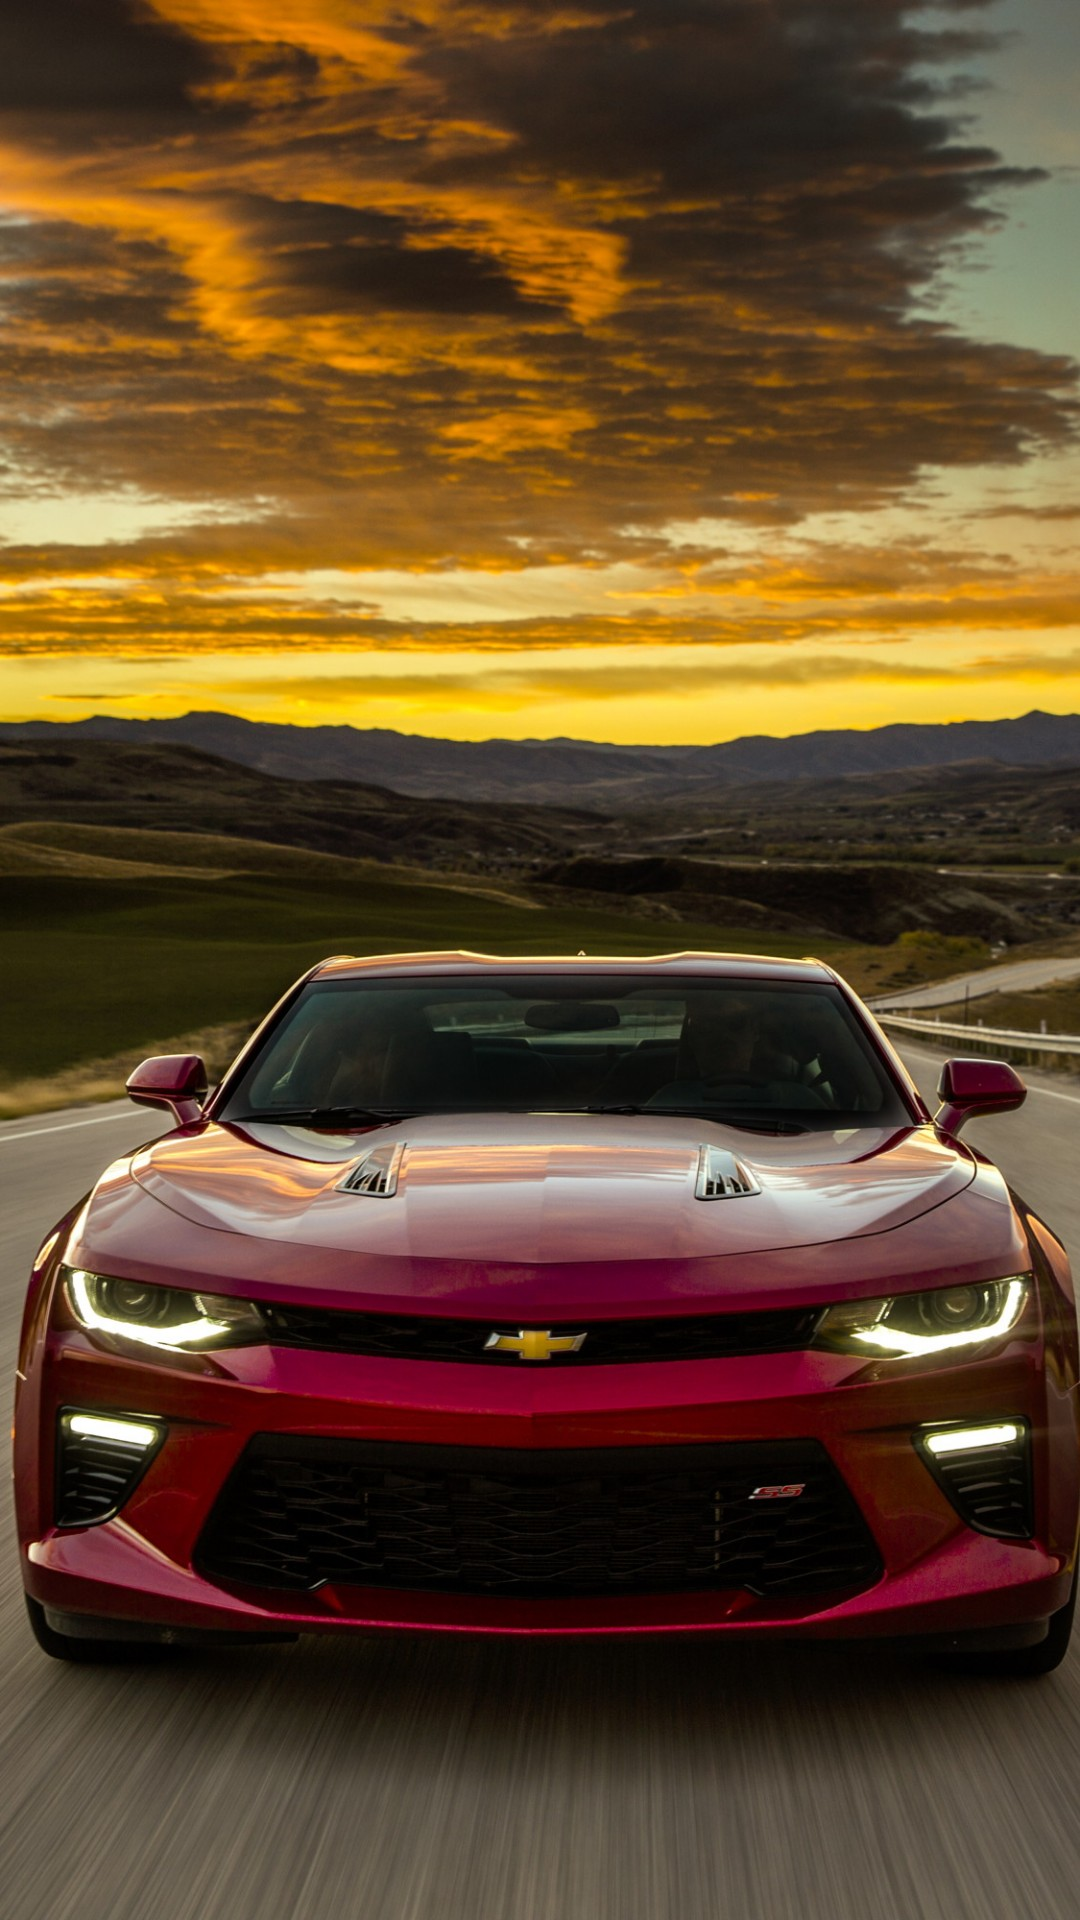 New Nissan Maxima >> Wallpaper Chevrolet Camaro Europe version, red, sunset, Cars & Bikes #11706